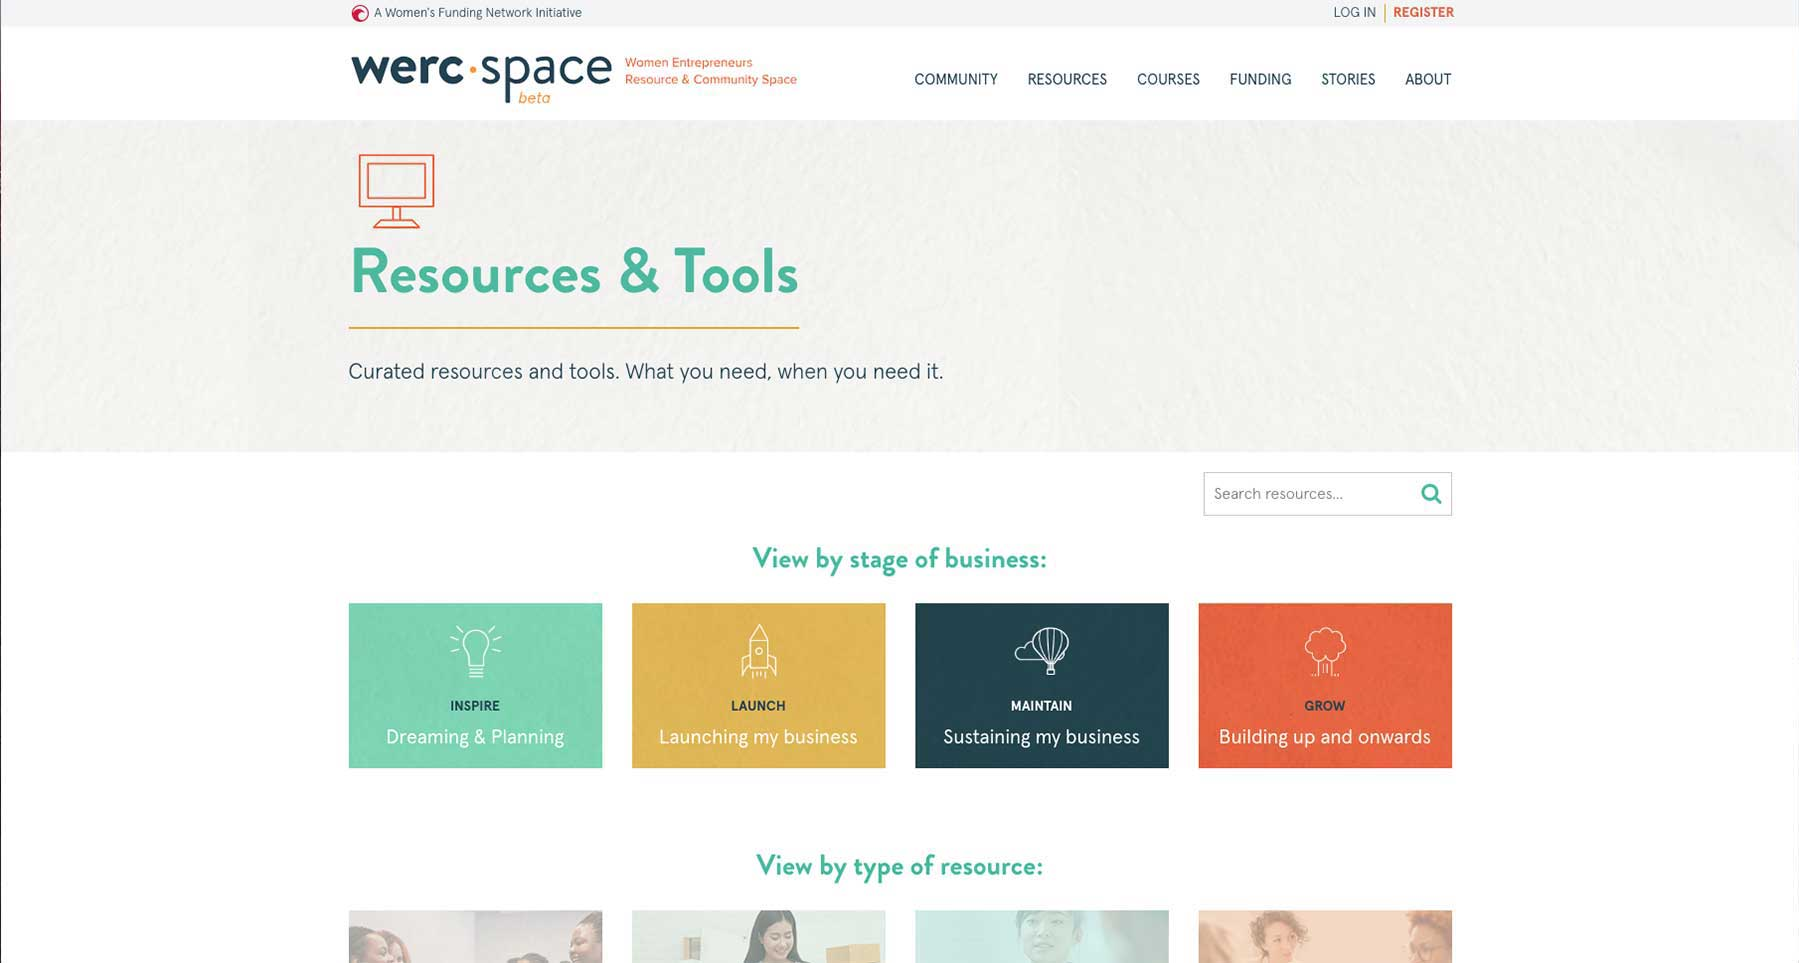 werc space - Resources